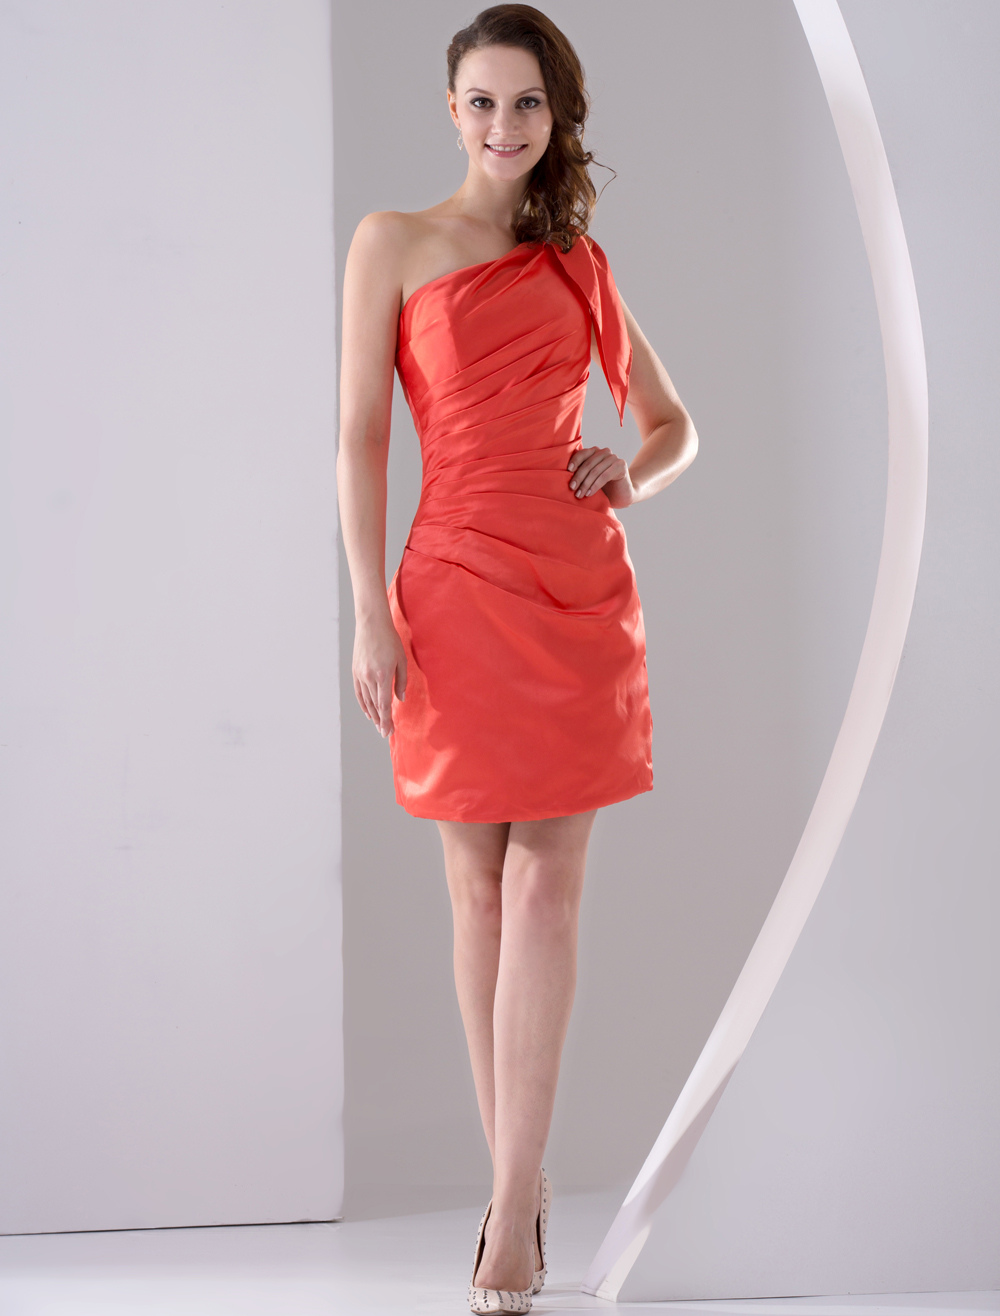 Graceful Orange Satin One-shouldered Knee Length Bridesmaid Dress